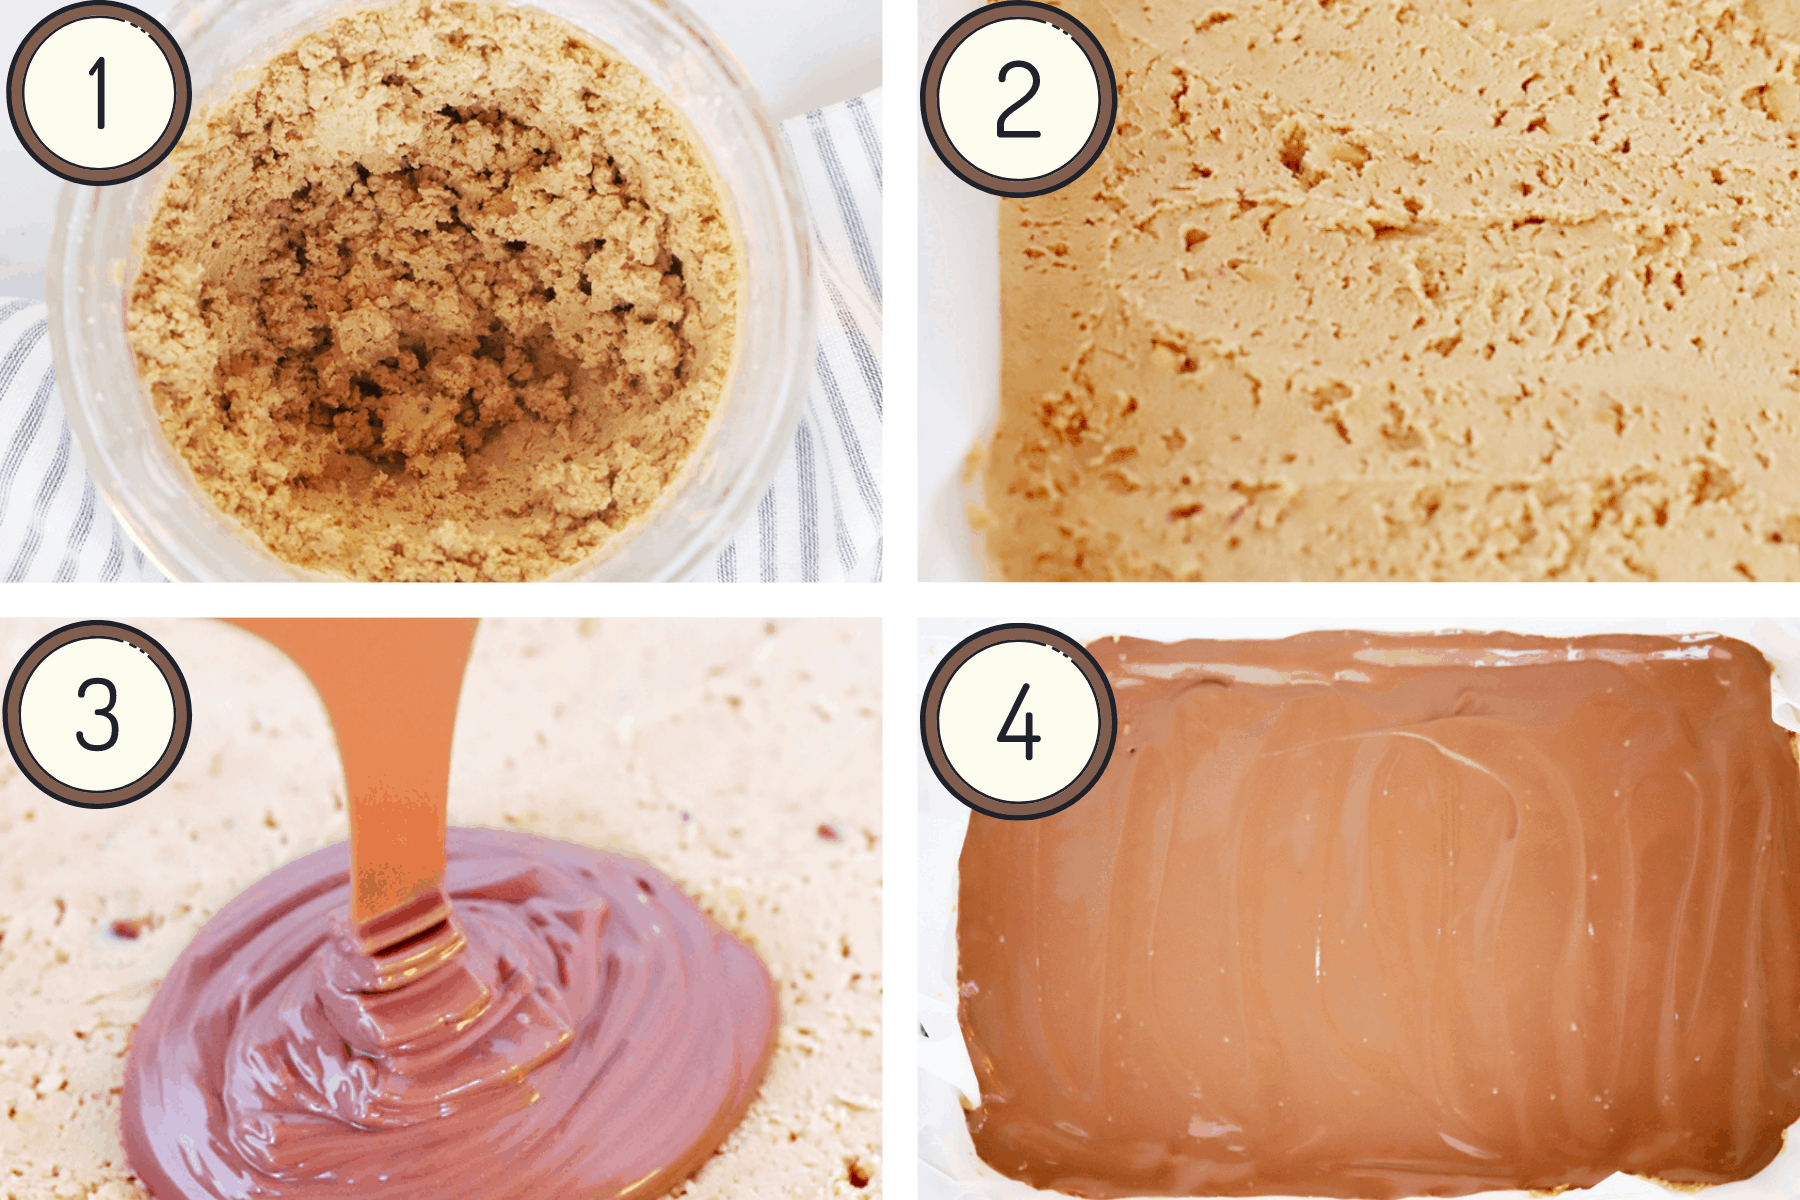 Process pictures of peanut butter cups